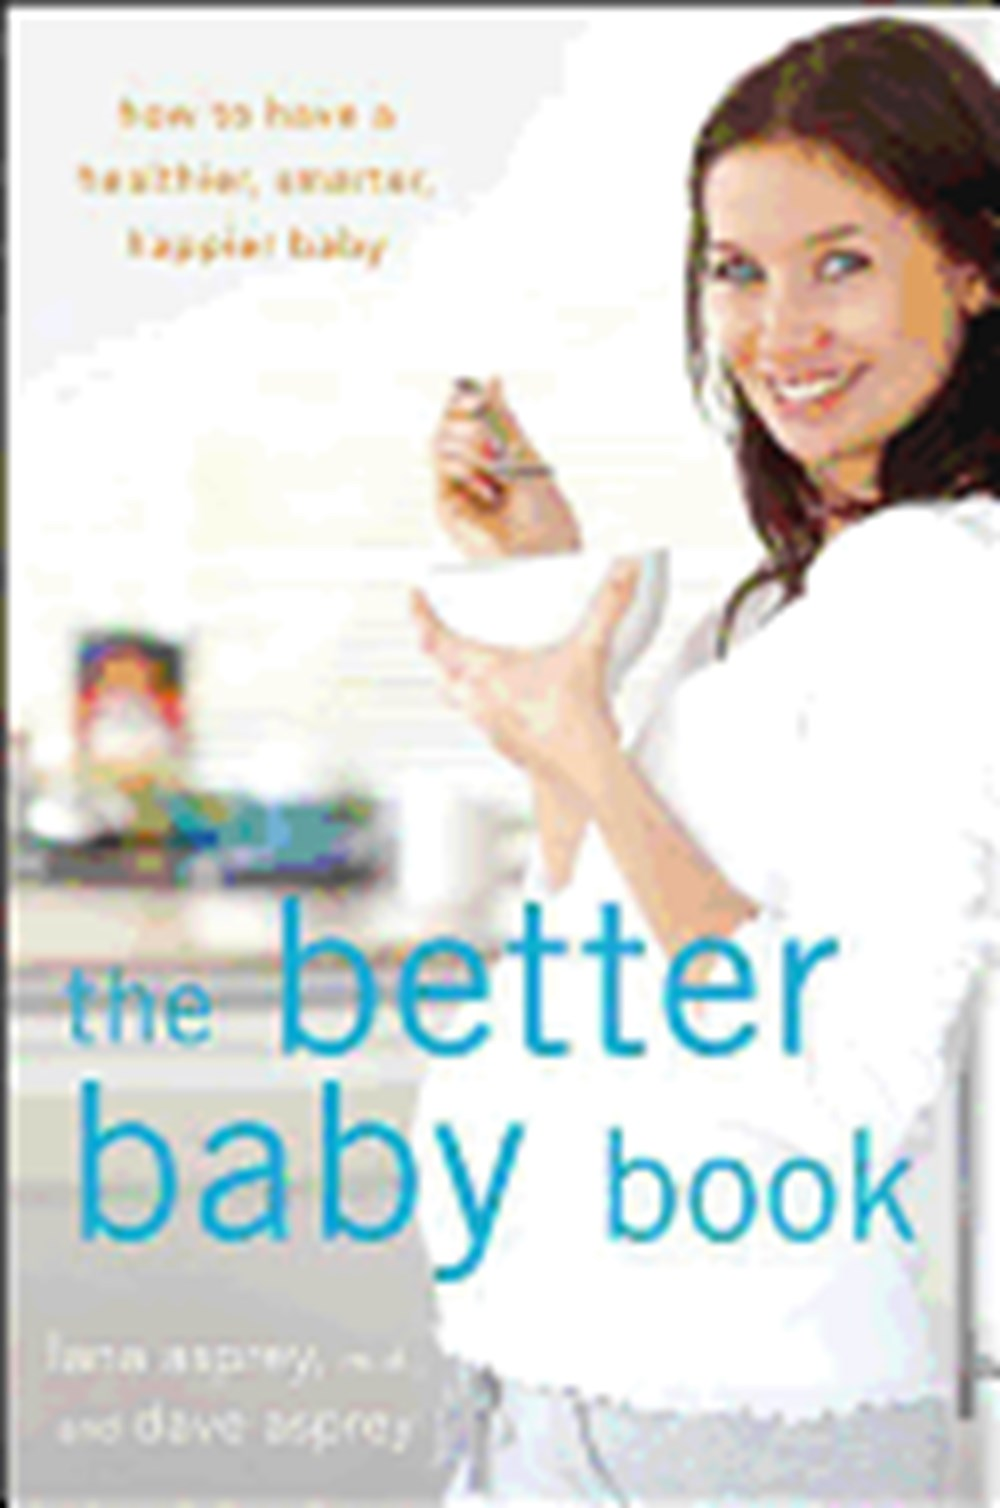 Better Baby Book How to Have a Healthier, Smarter, Happier Baby